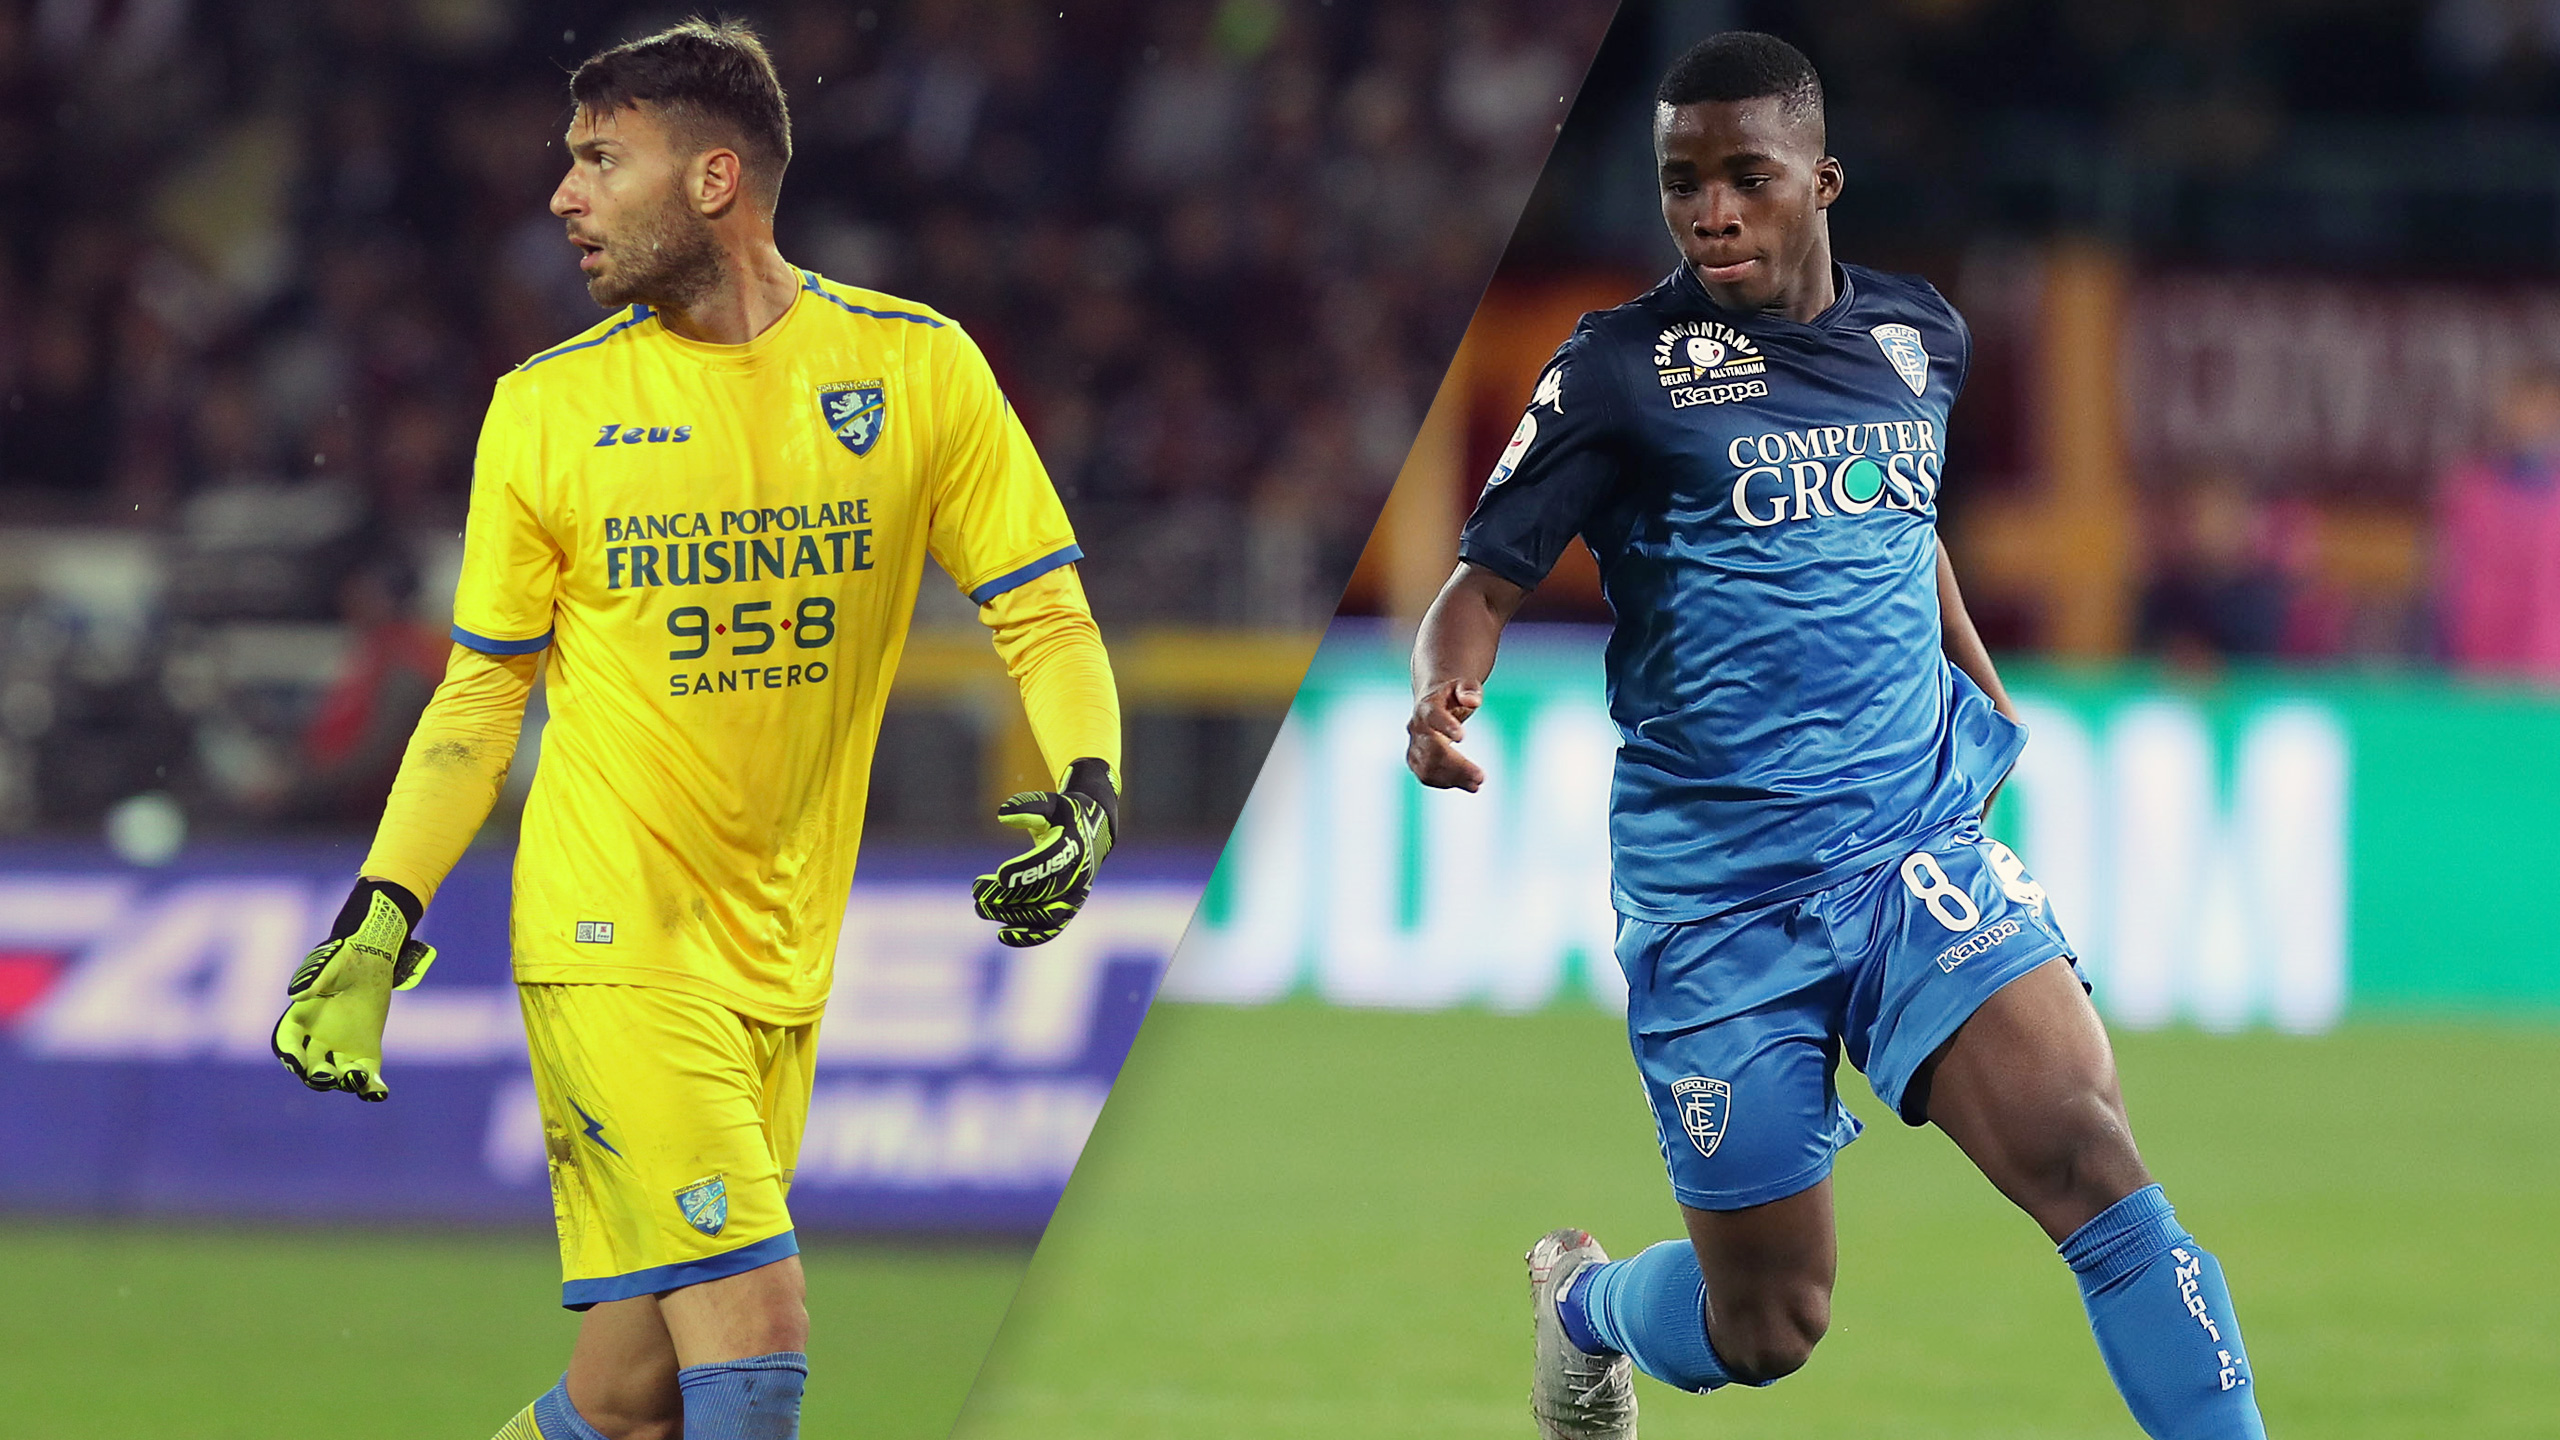 In Spanish - Frosinone vs. Empoli (Serie A)